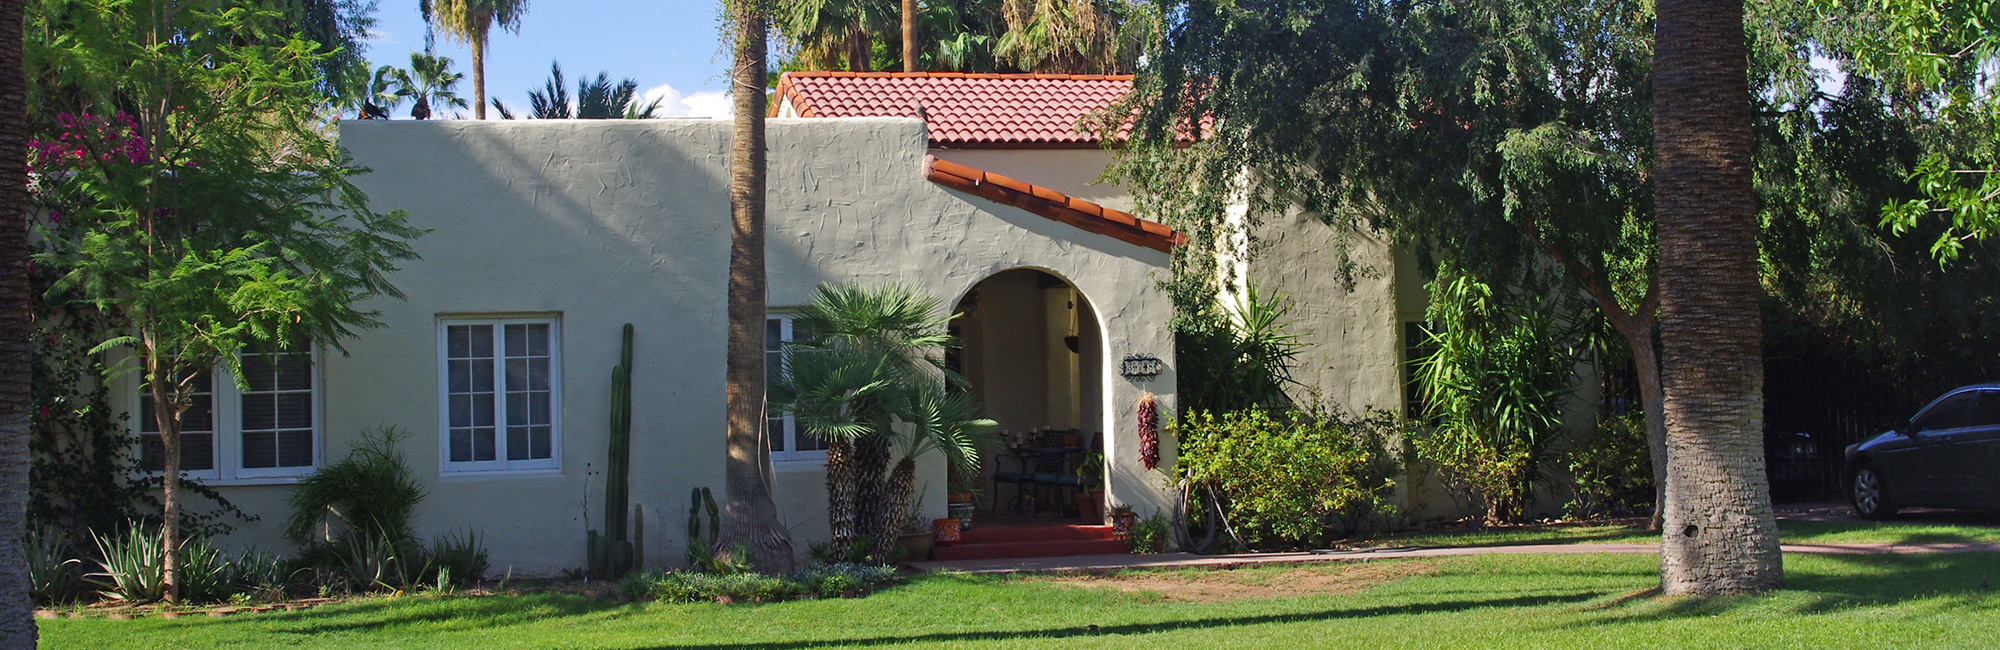 La Hacienda Historic District of Phoenix